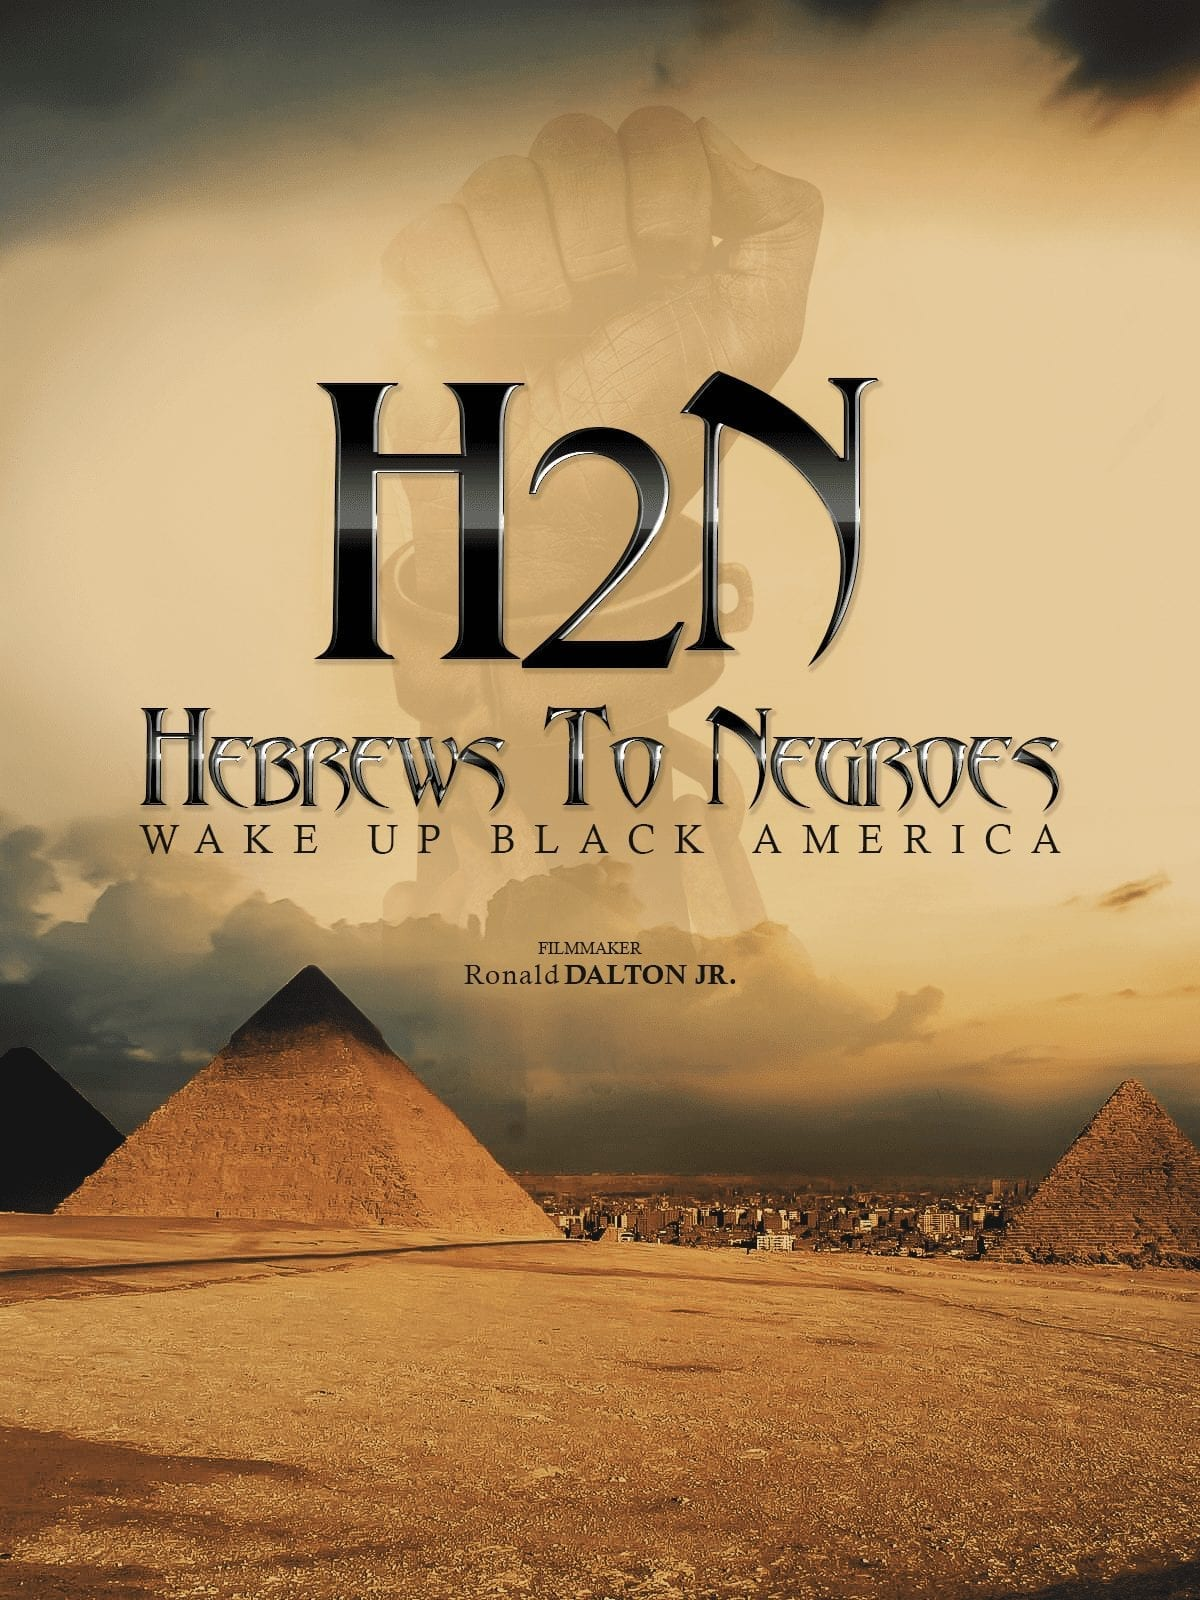 Hebrews to Negroes: Wake Up Black America - The Movie Documentary (Blu-Ray)